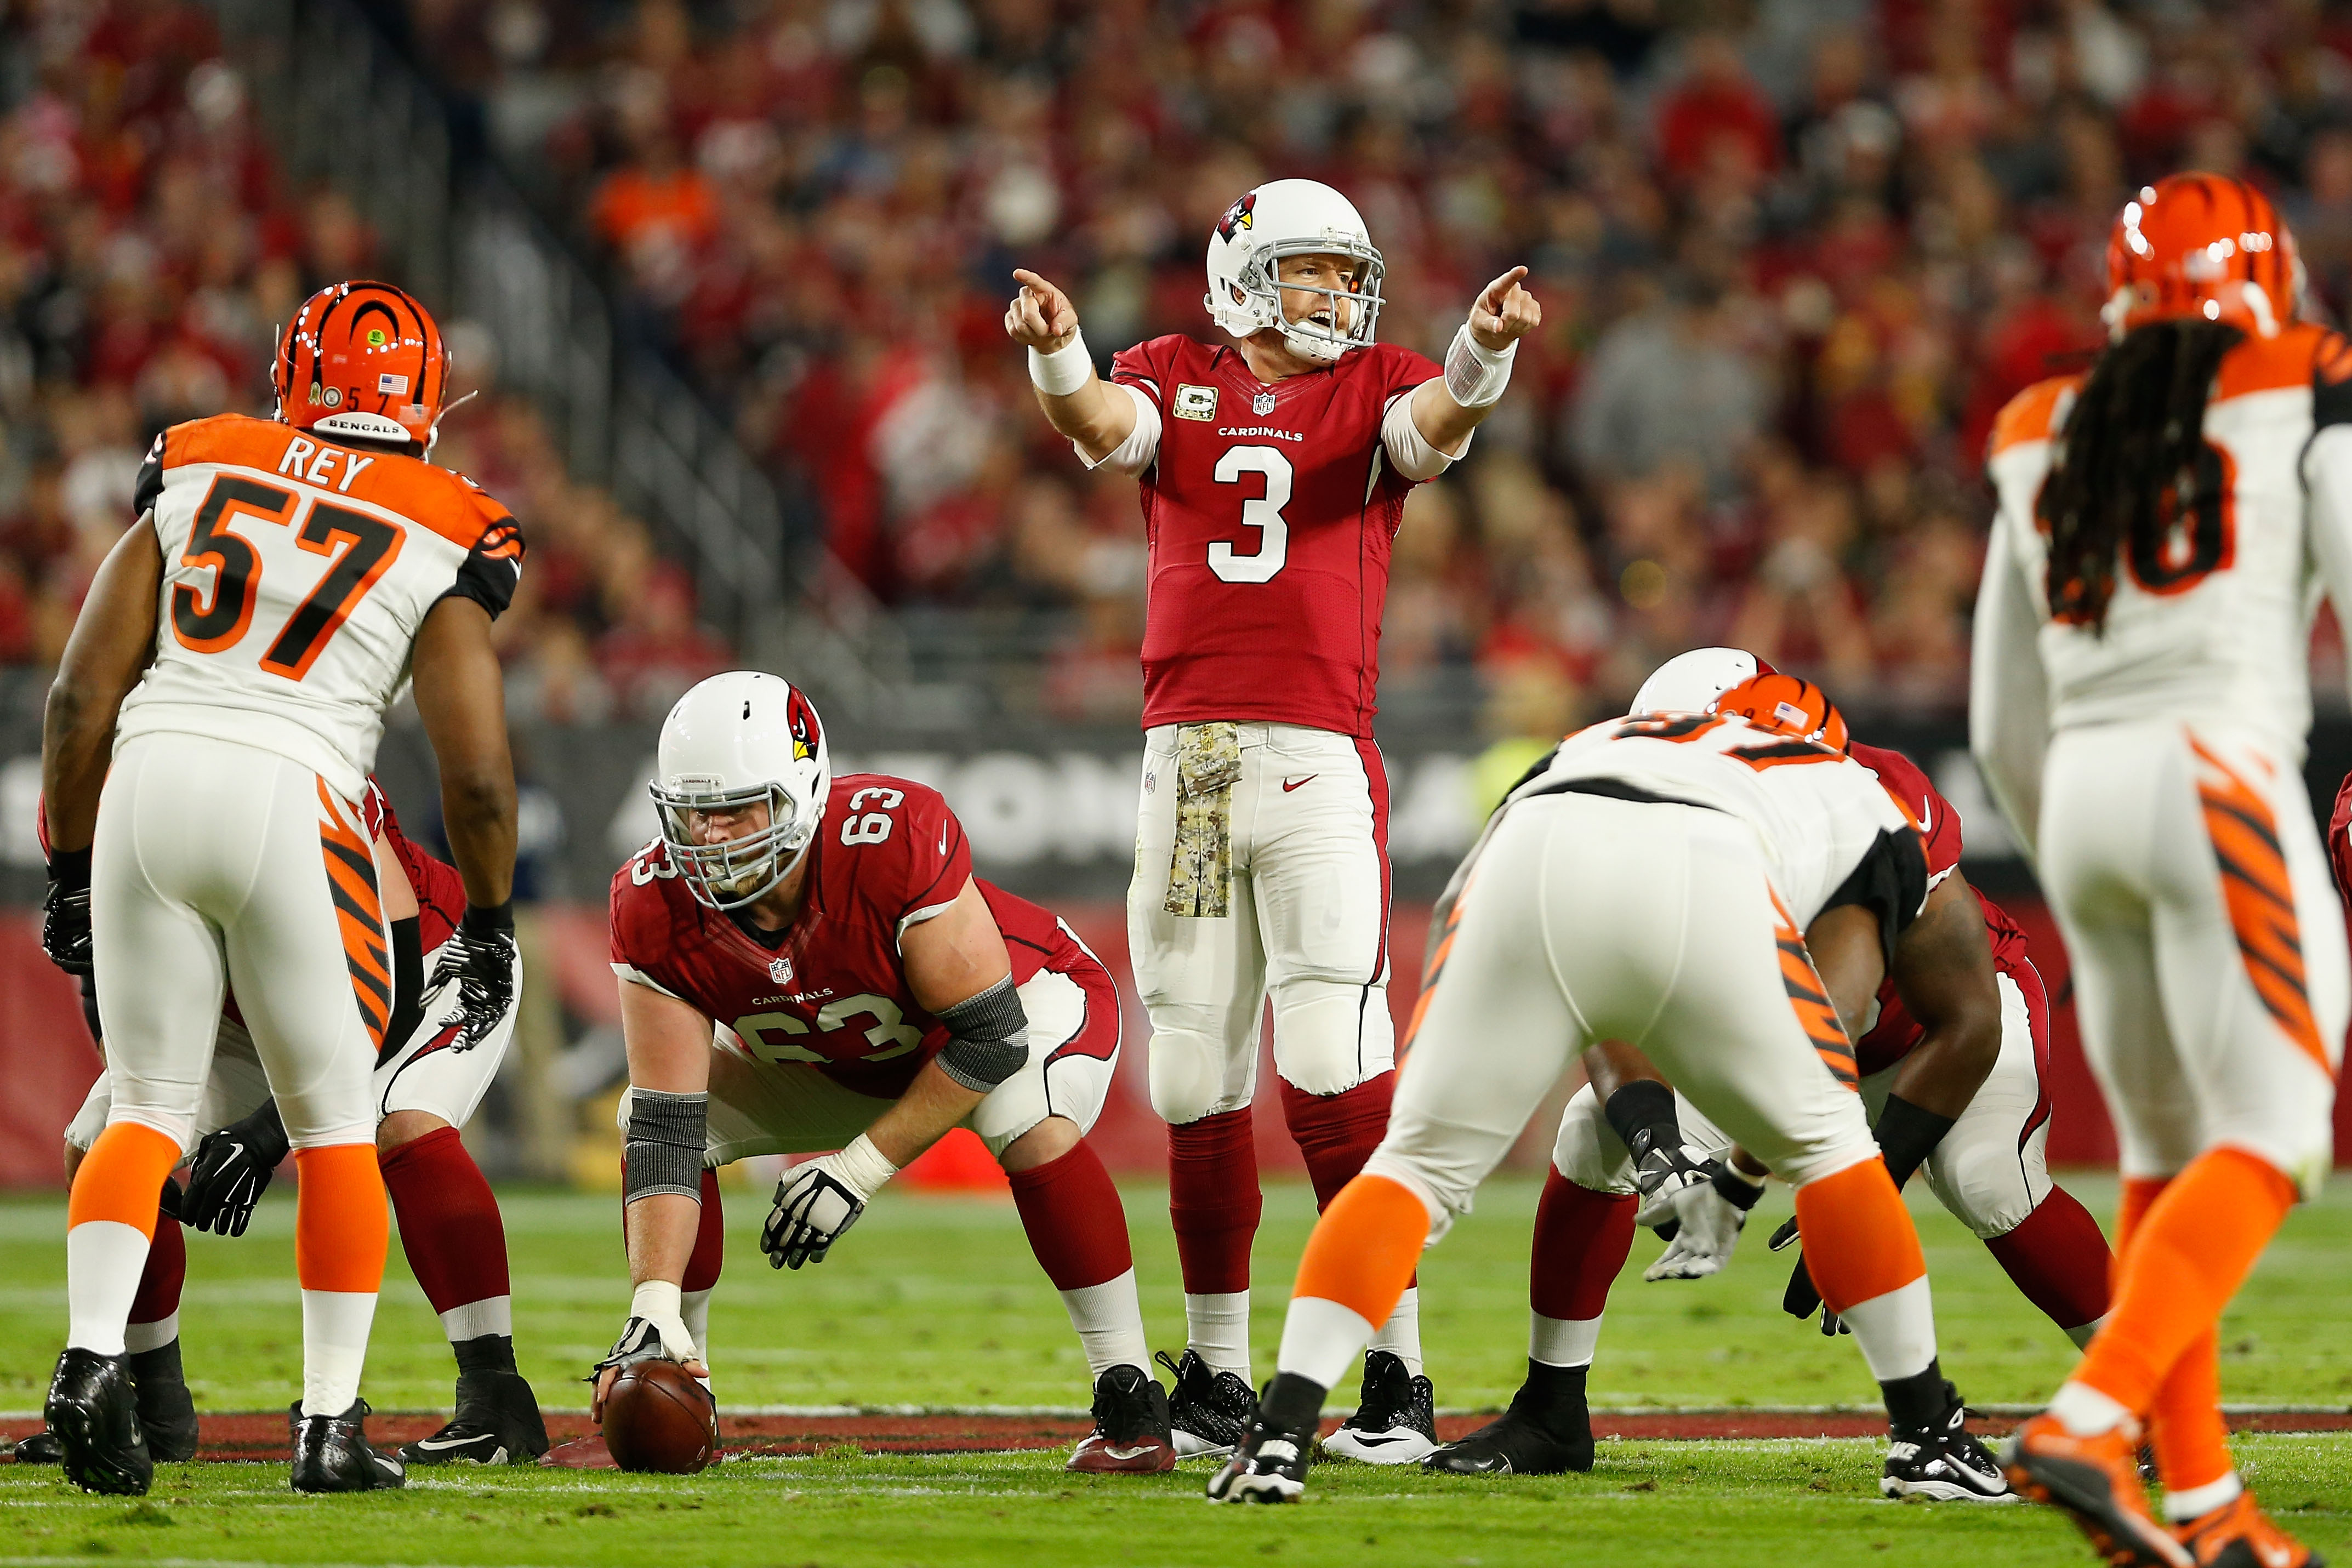 Can Carson Palmer and the Cardinals help the Giants on Sunday night?